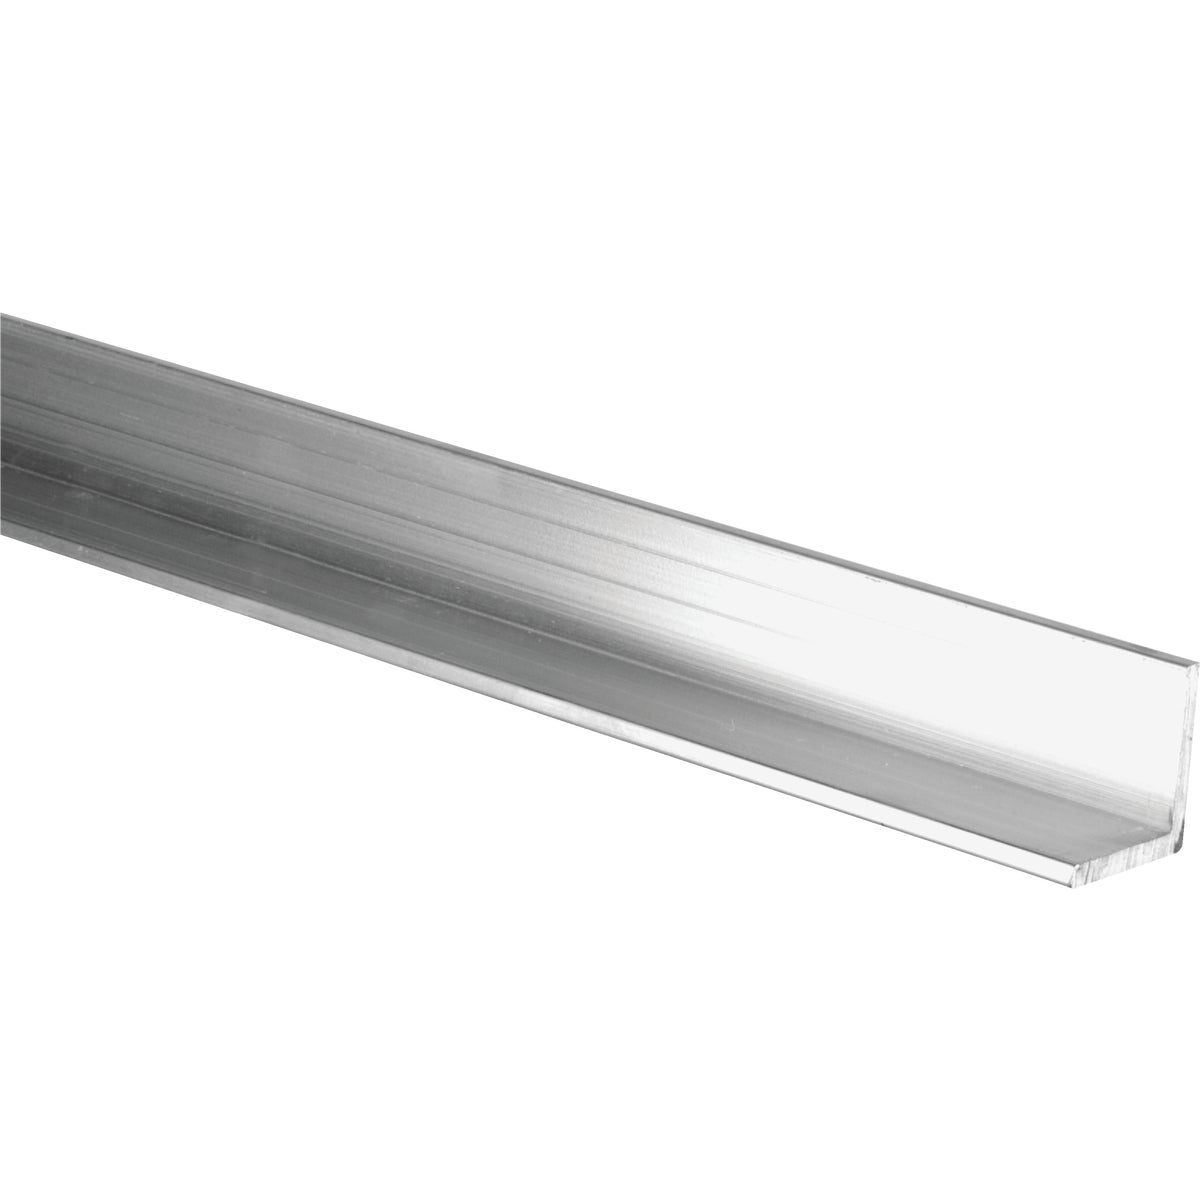 National Mfg. 1/16X1-1/2X6' ALUM ANGLE N247361